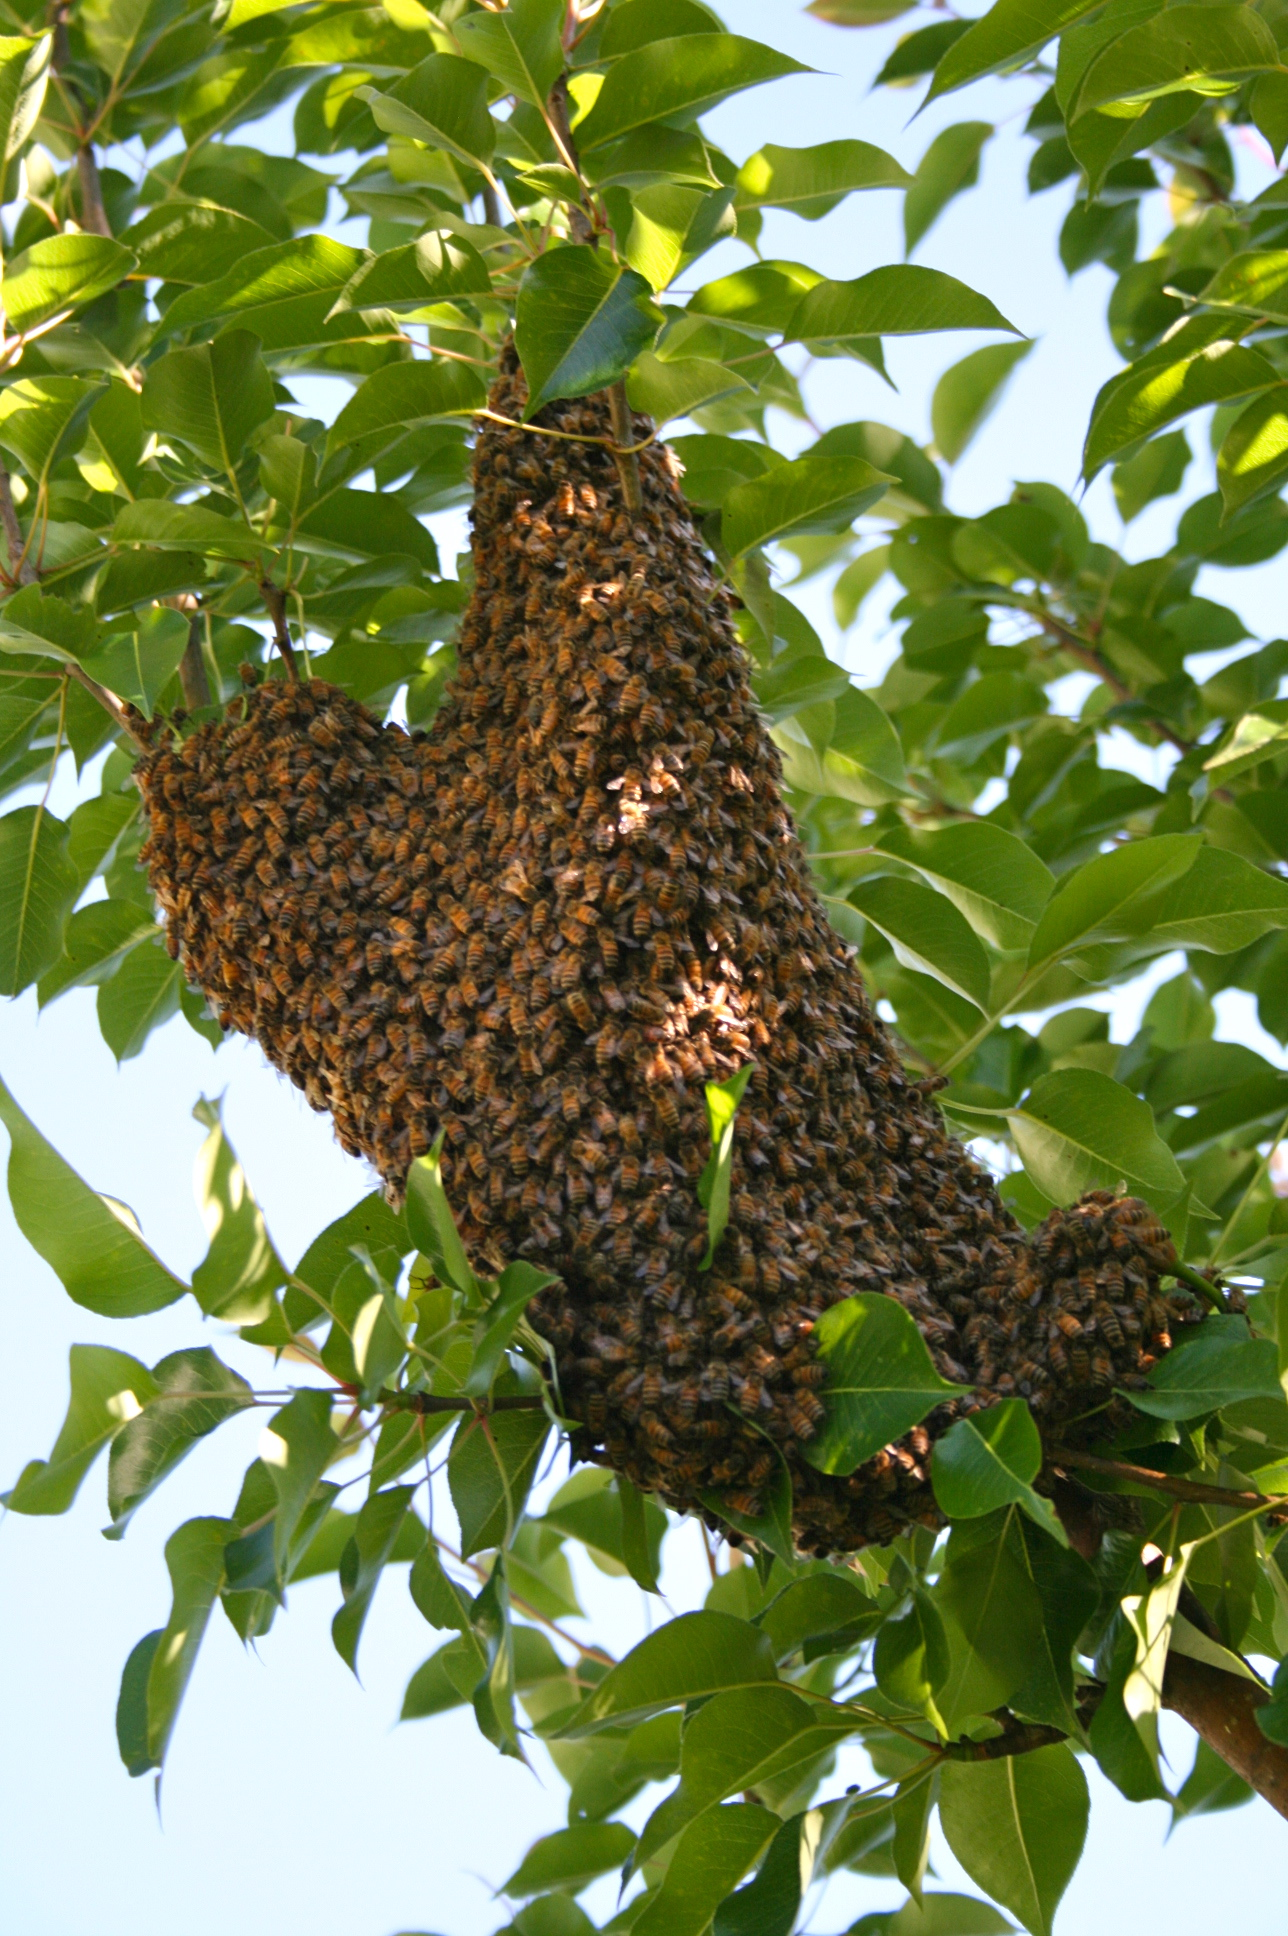 Swarm in a pear tree